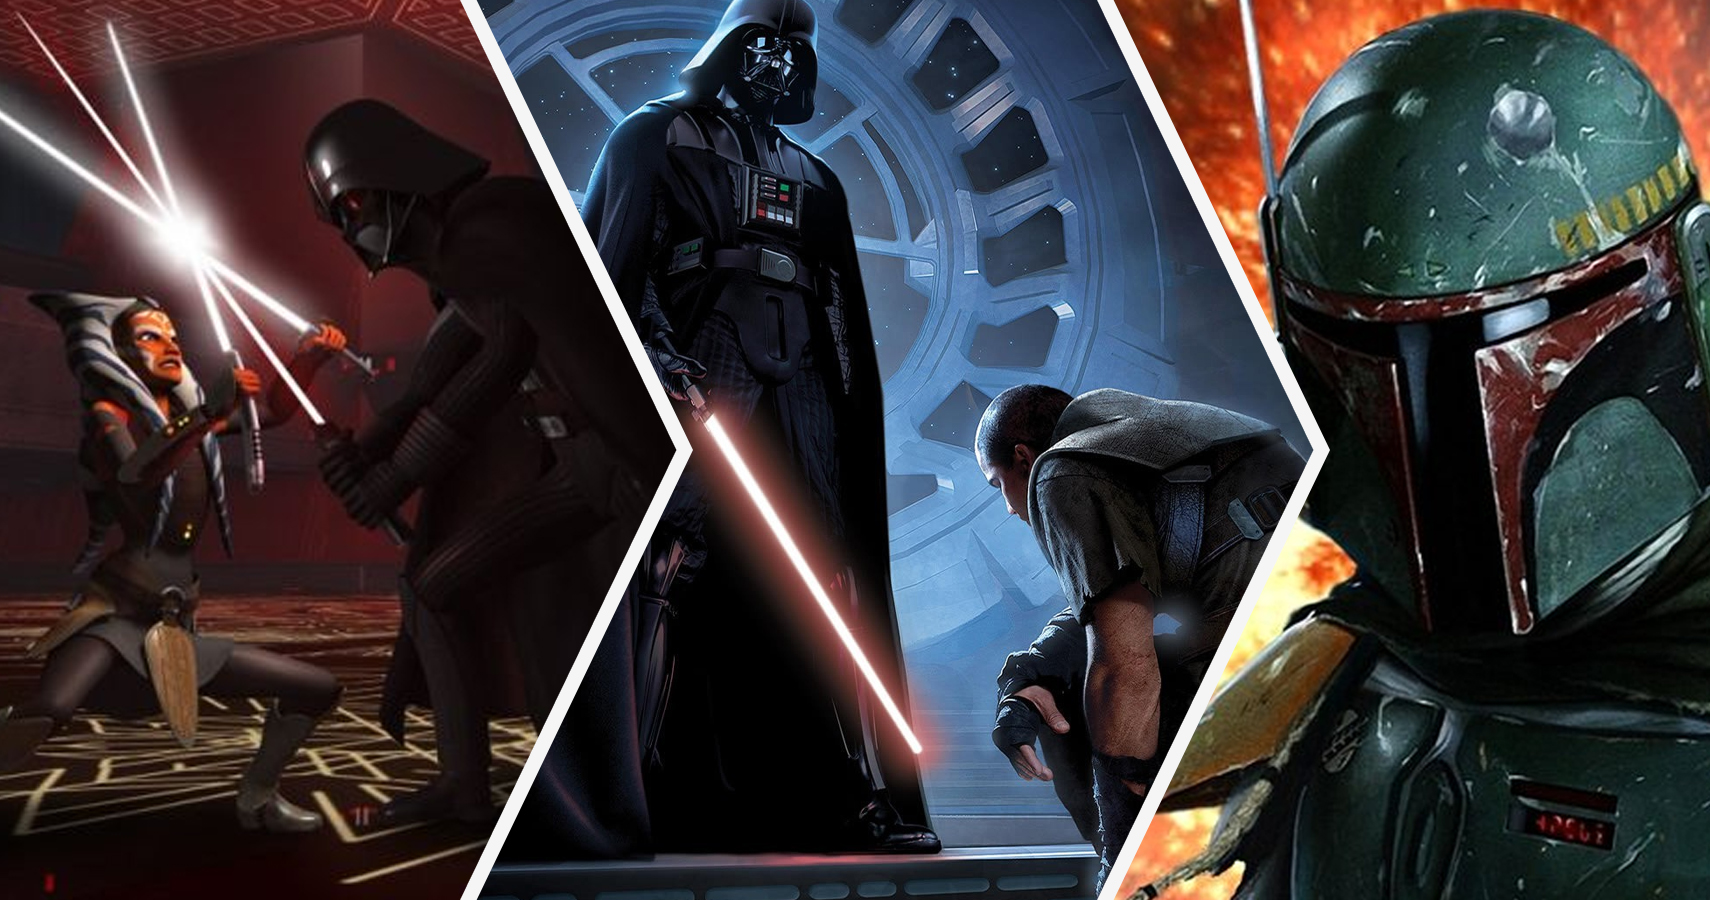 Star Wars: 15 Things You Had No Idea Darth Vader Did Between Episode 3 And 4